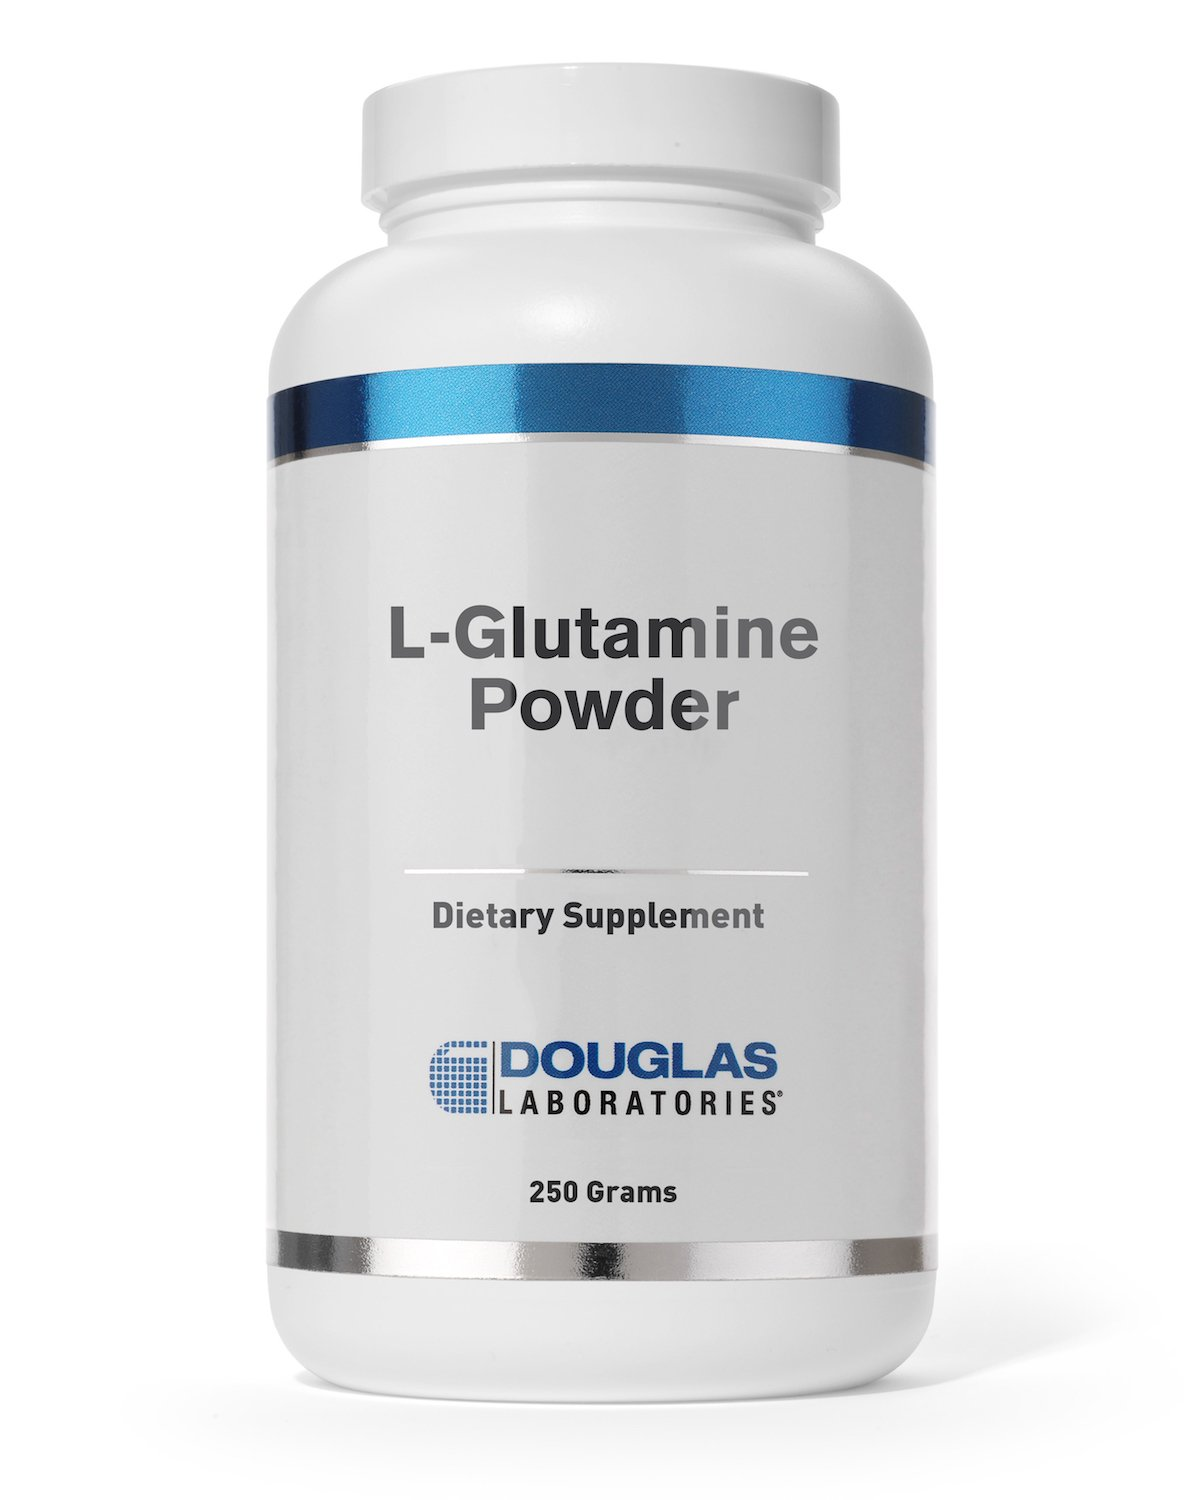 Douglas Laboratories® - L-Glutamine Powder - Supports Structure and Function of the Gastrointestinal (GI) Tract and Immune System* - 250 Grams by Douglas Laboratories